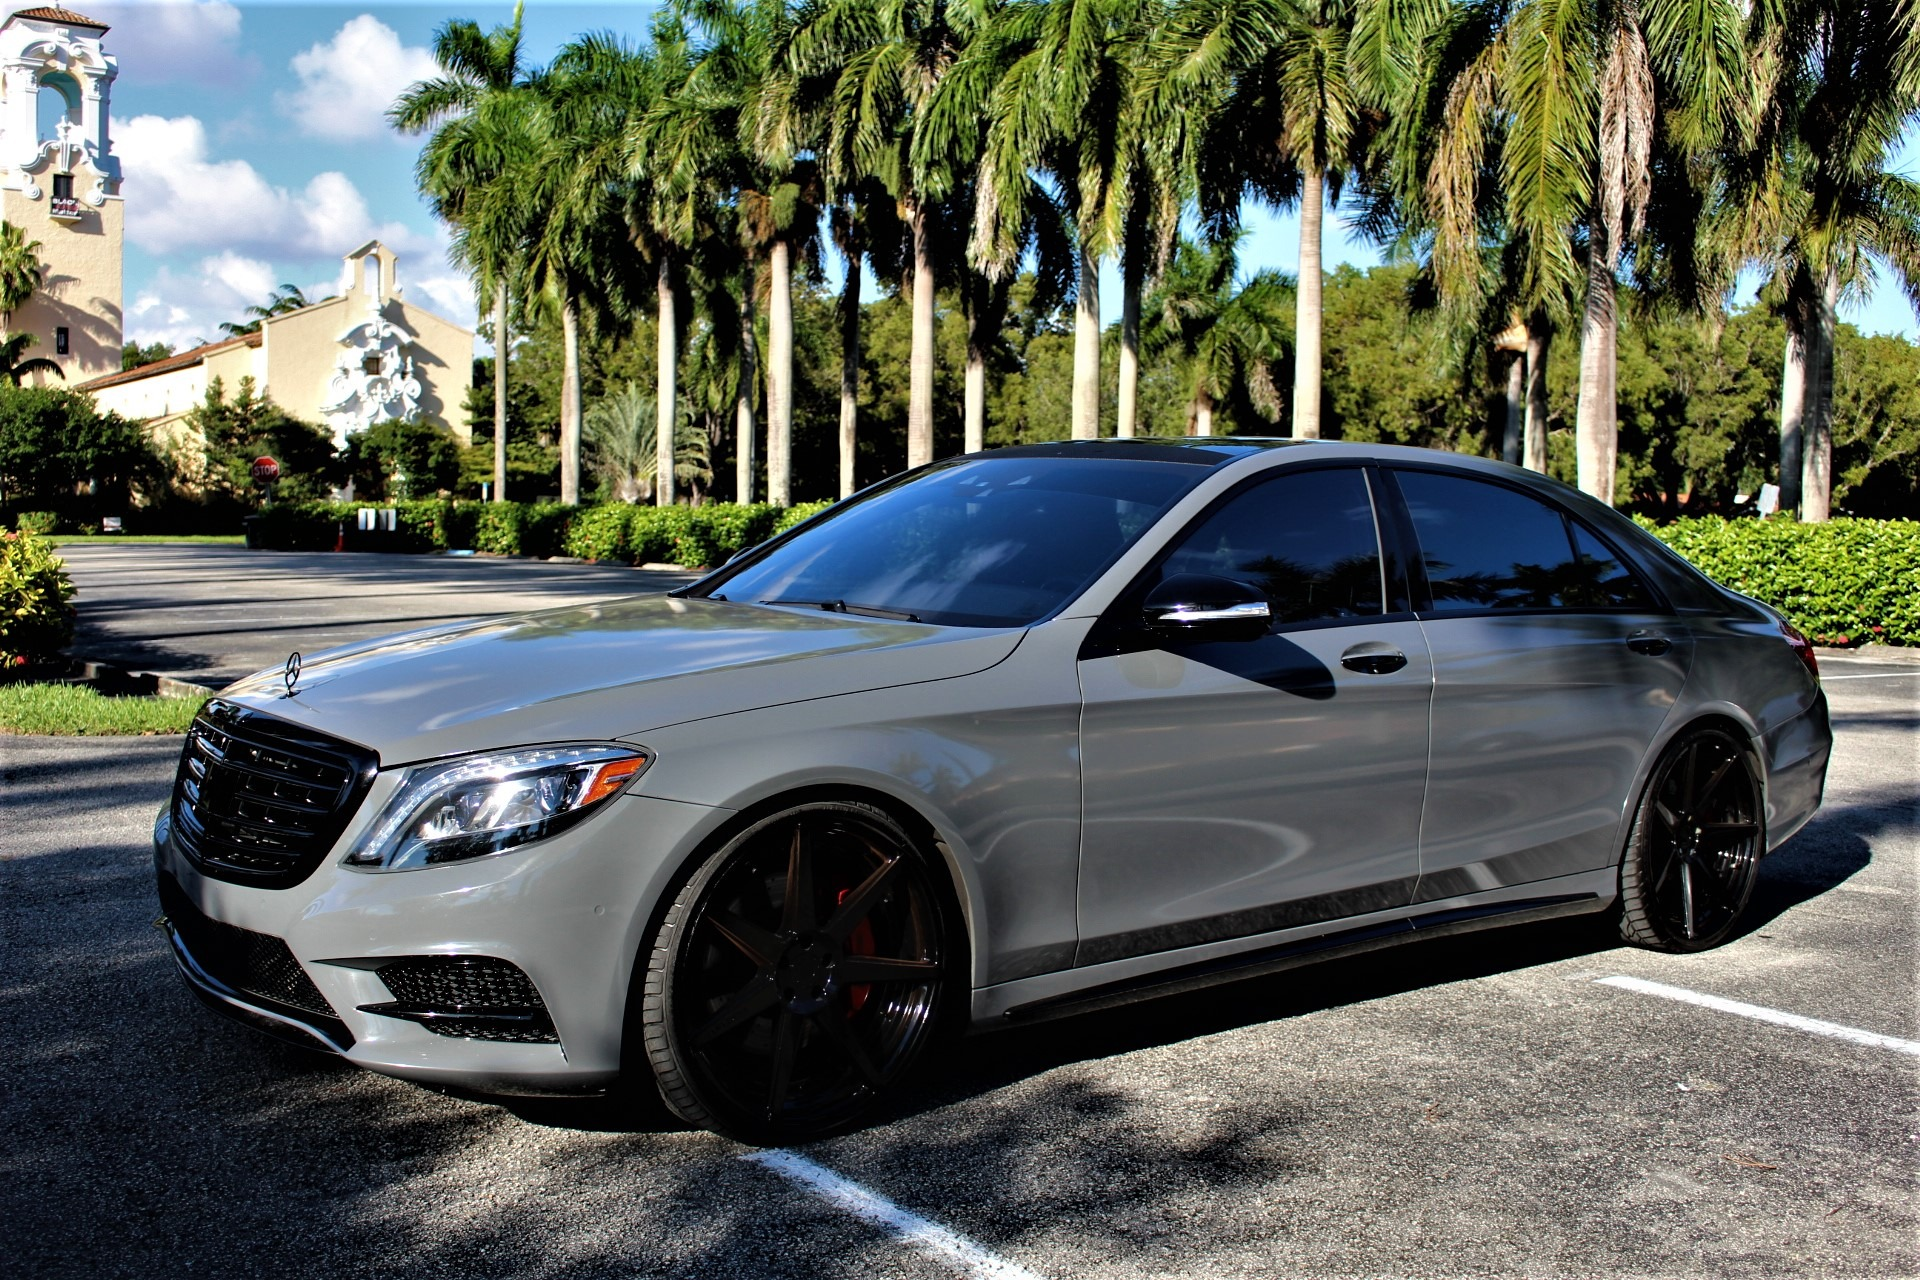 Used 2014 Mercedes-Benz S-Class S 550 for sale Sold at The Gables Sports Cars in Miami FL 33146 4